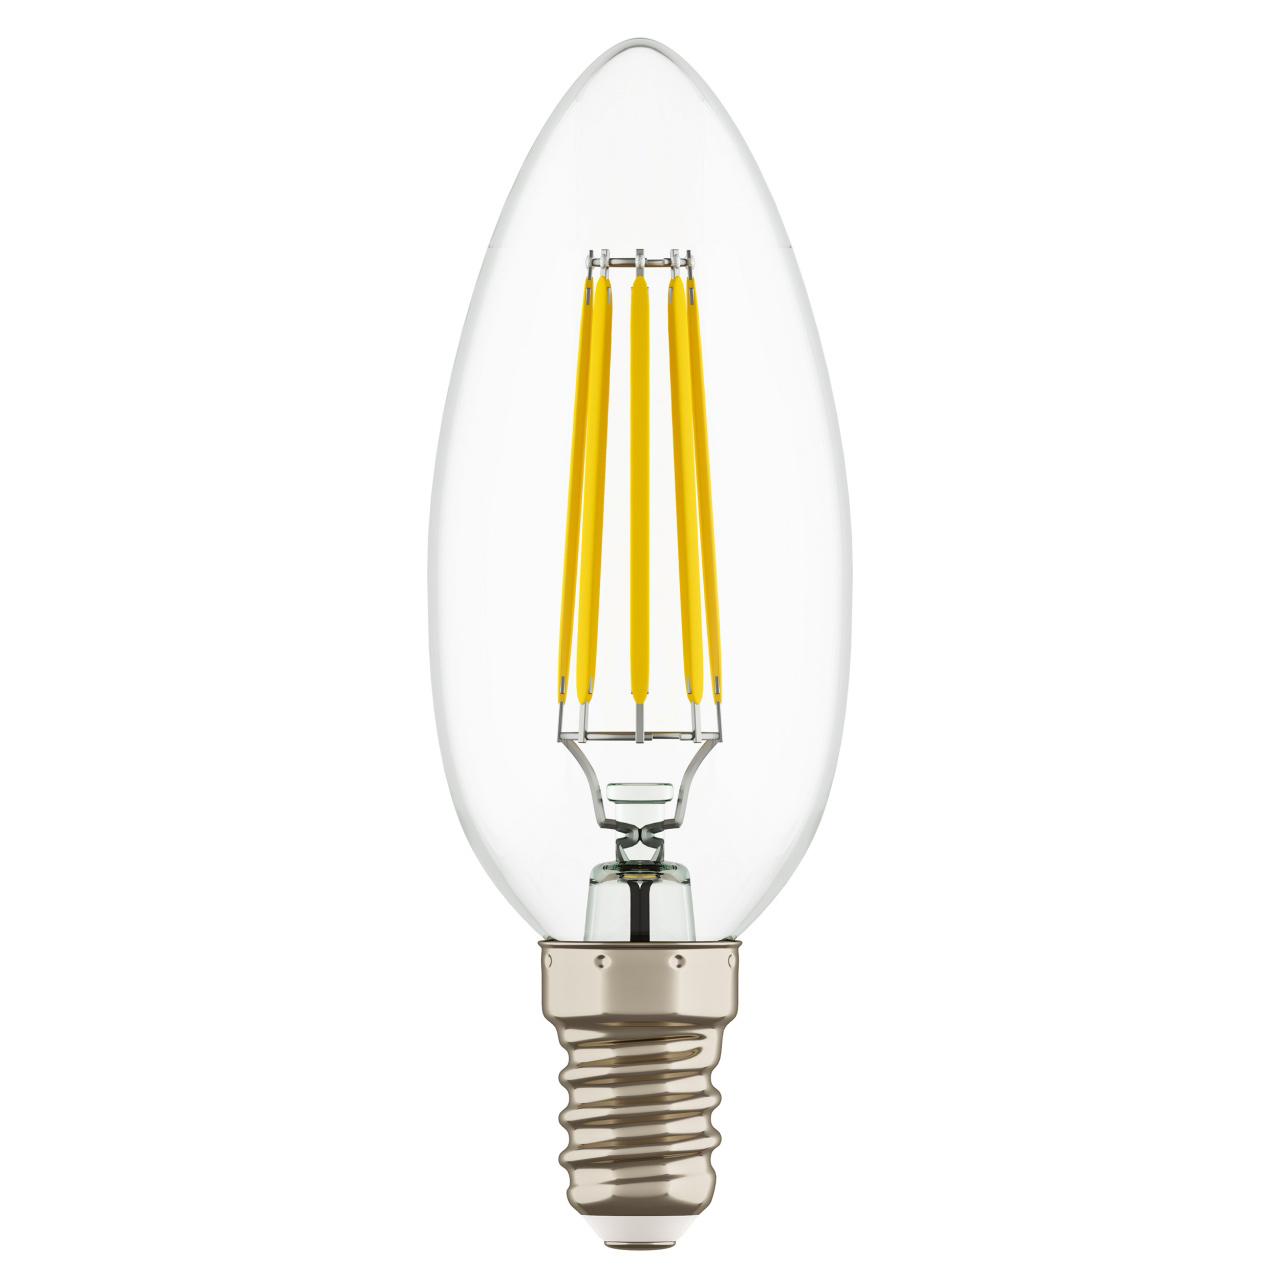 Лампа LED 220V C35 E14 4W=40W 350LM 360G CL 4000K 20000H Lightstar 940564